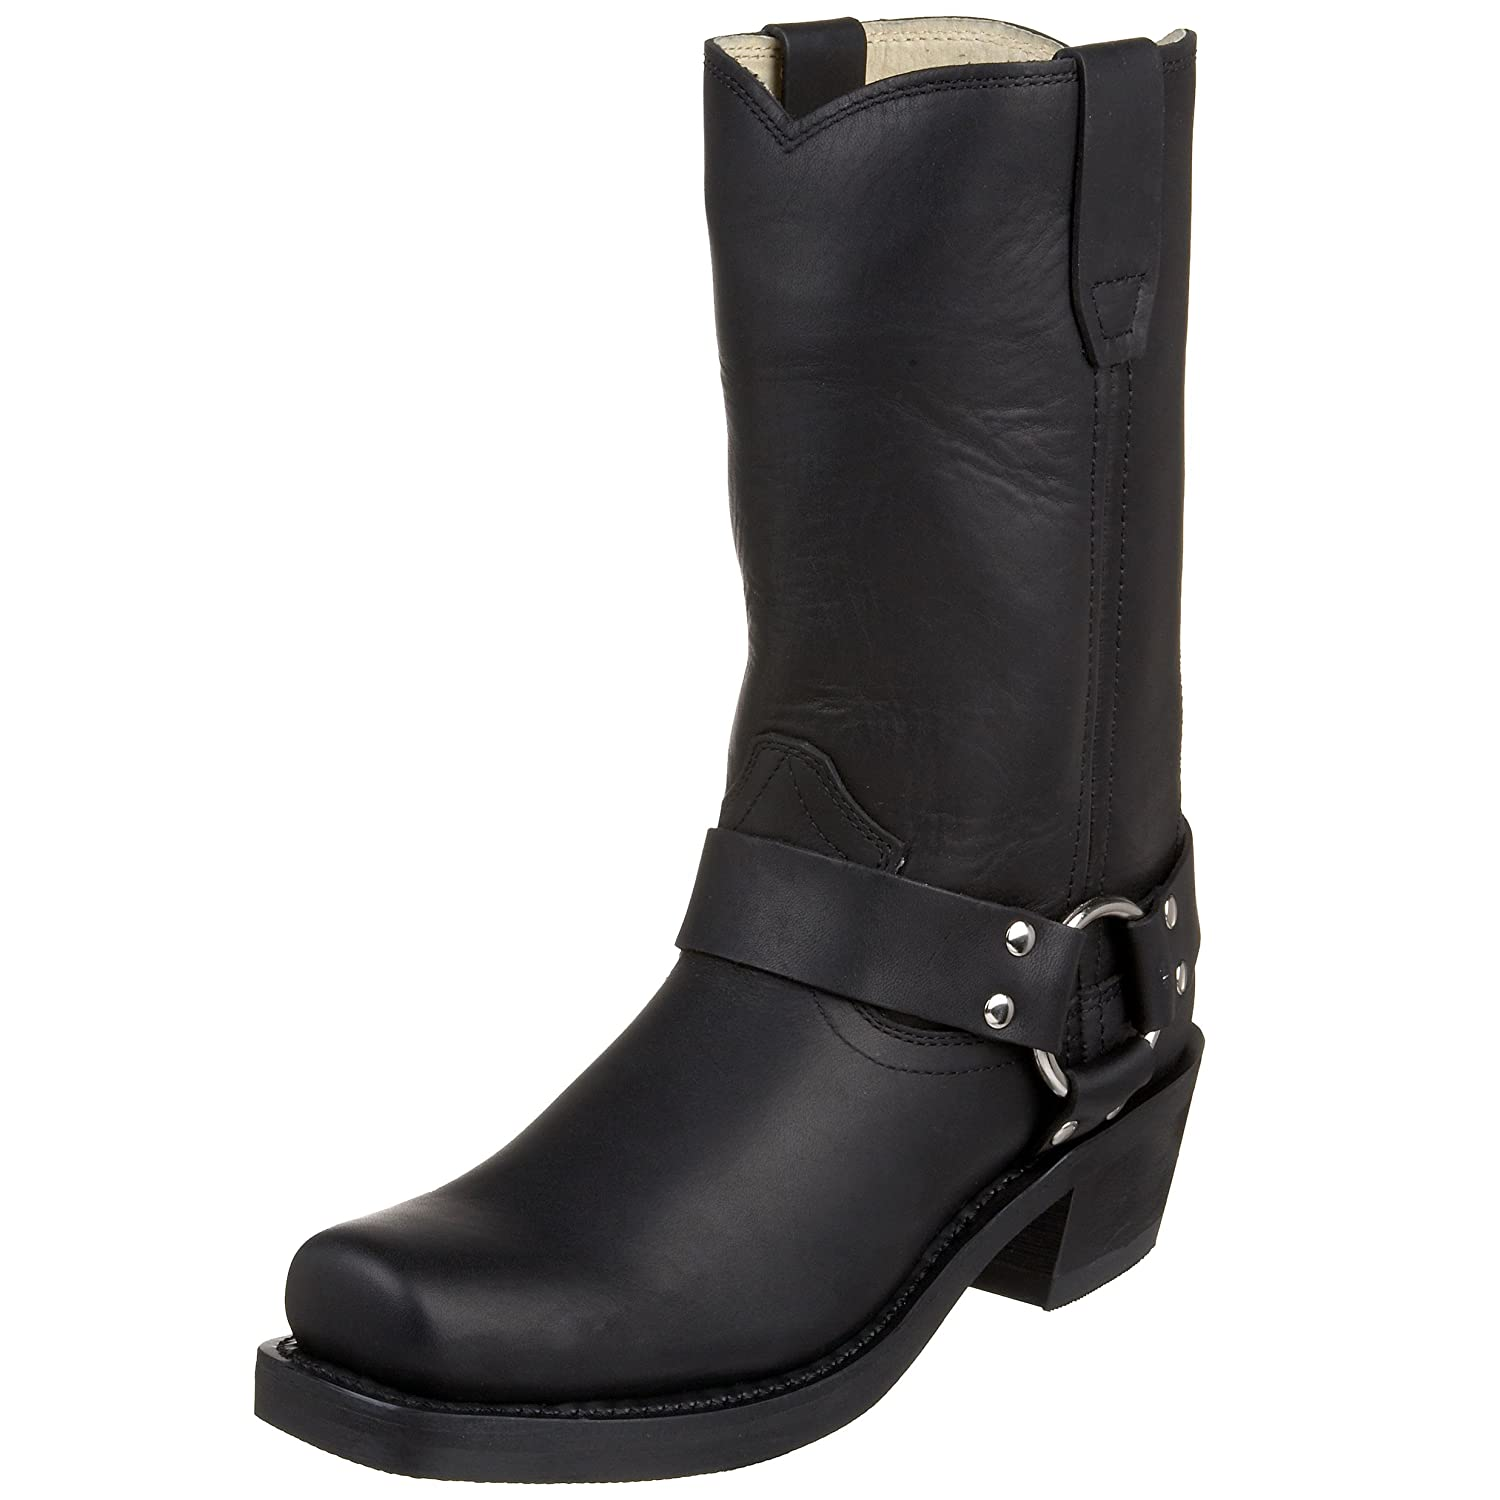 Durango Women's Harness Boot B000GO8ZZW 9.5 B(M) US|Black